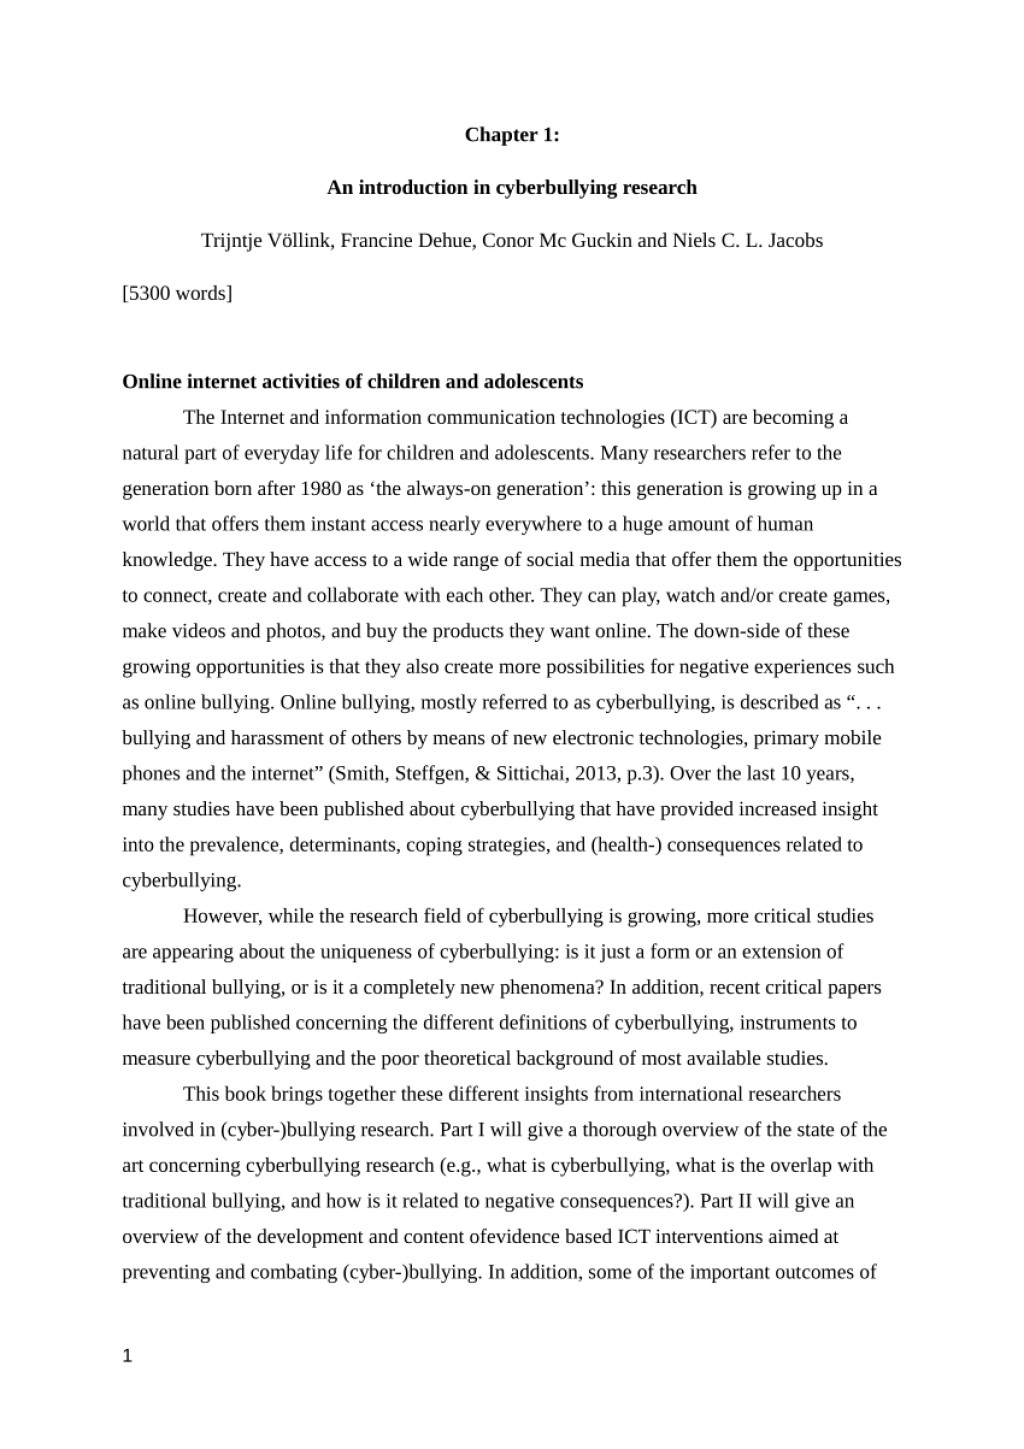 008 Research Paper Largepreview Example Of Conclusion In About Unforgettable Bullying Large